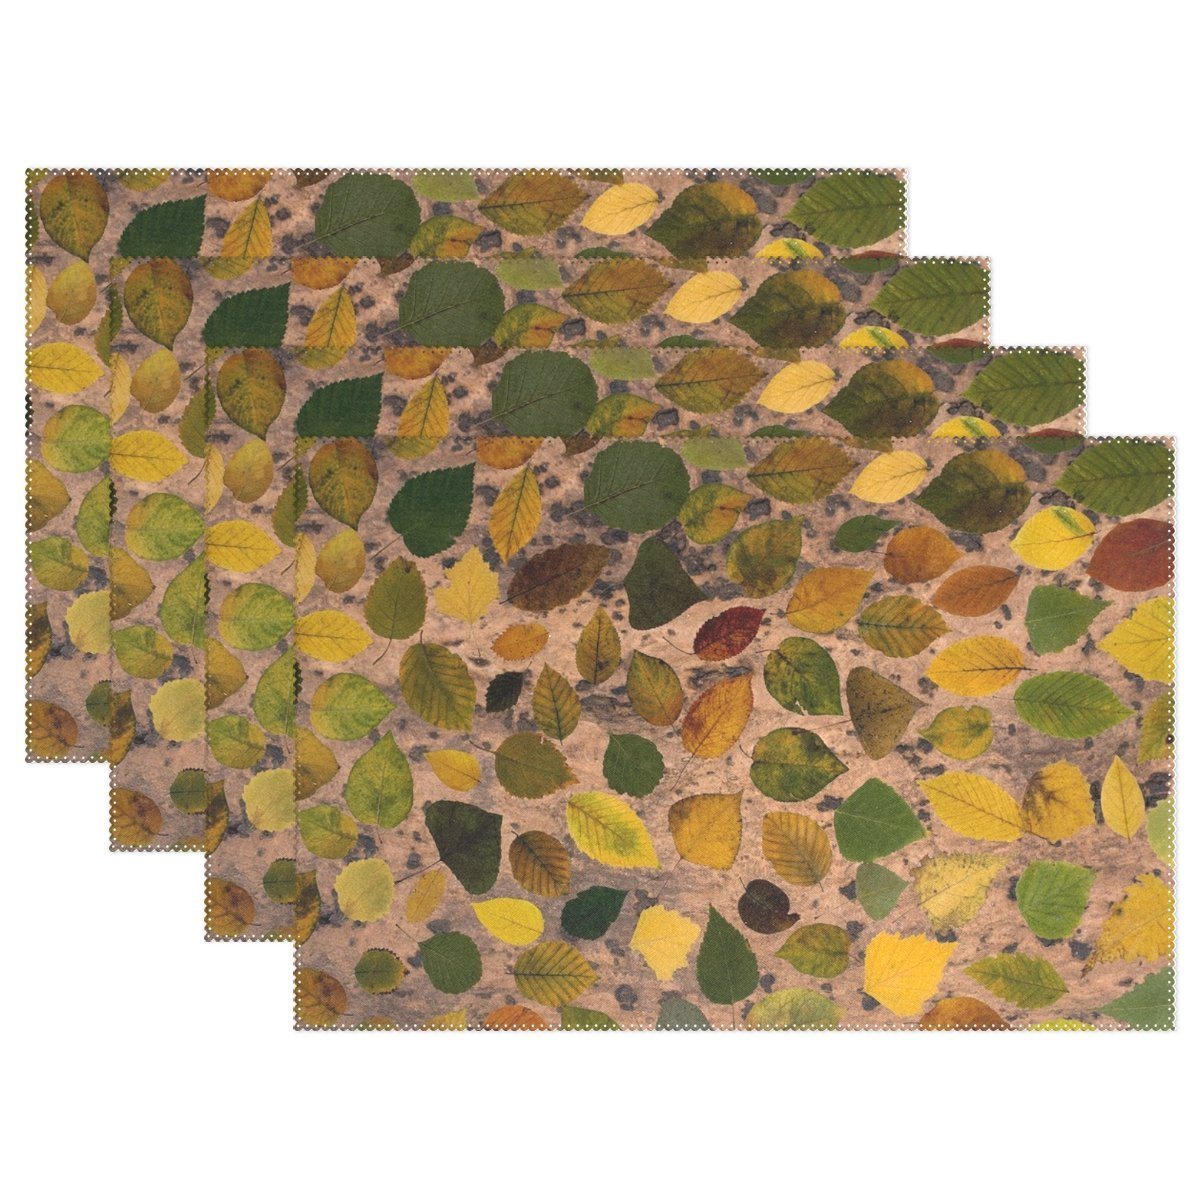 AIKENING Leafes Tree Leaves Colorful Composition Arrangement Placemats Set Of 4 Heat Insulation Stain Resistant For Dining Table Durable Non-slip Kitchen Table Place Mats